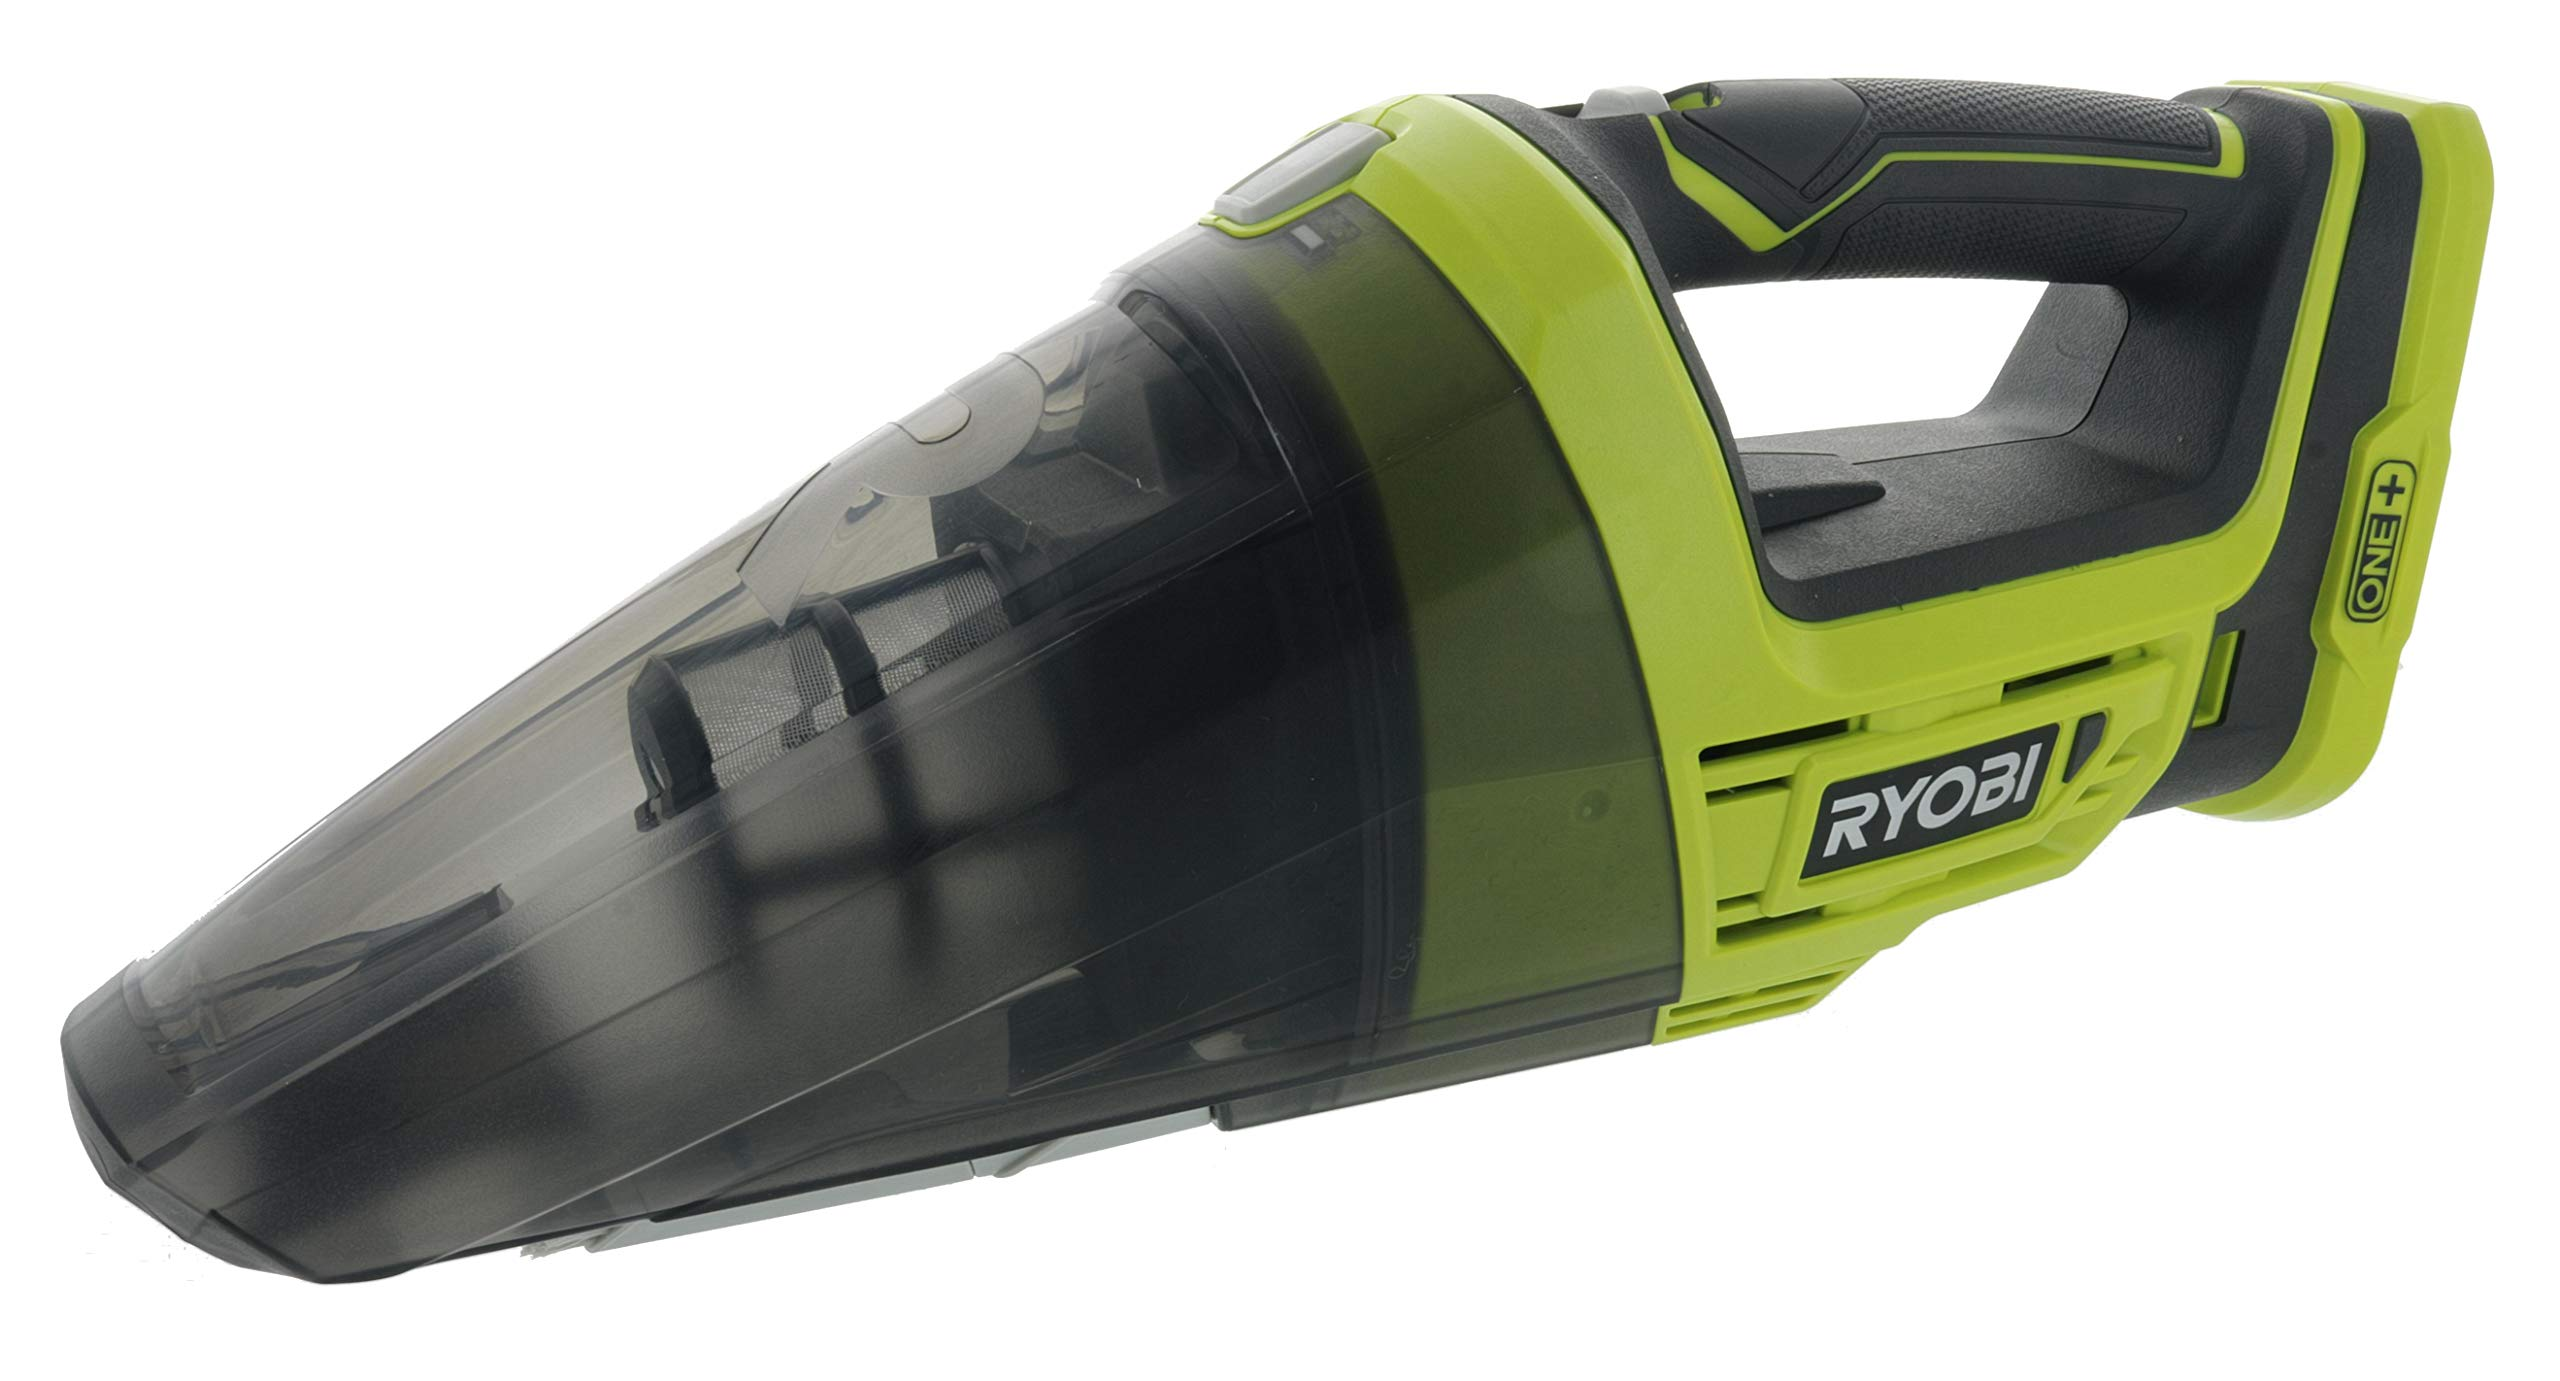 Ryobi P7131 One+ 18V Lithium Ion Battery Powered Cordless Dry Debris Hand Vacuum with Crevice Tool (Batteries Not Included / Power Tool Only) by Ryobi